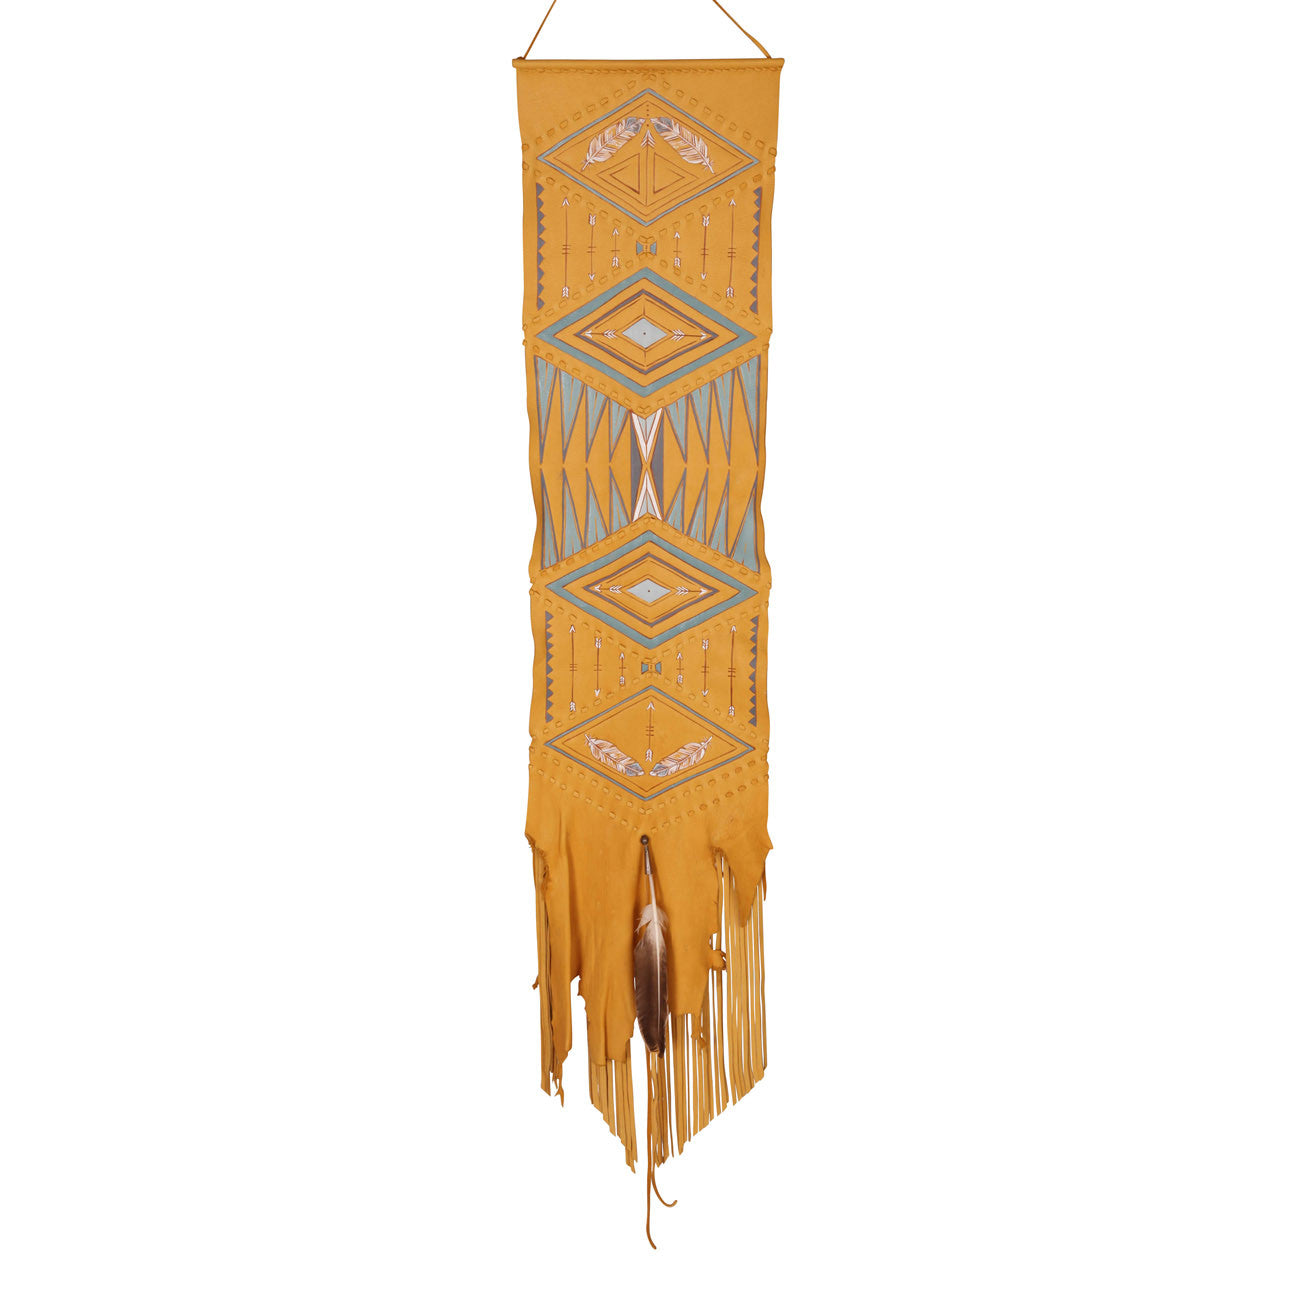 Three Arrows Leather- Shaman Sisters Wall Hangings